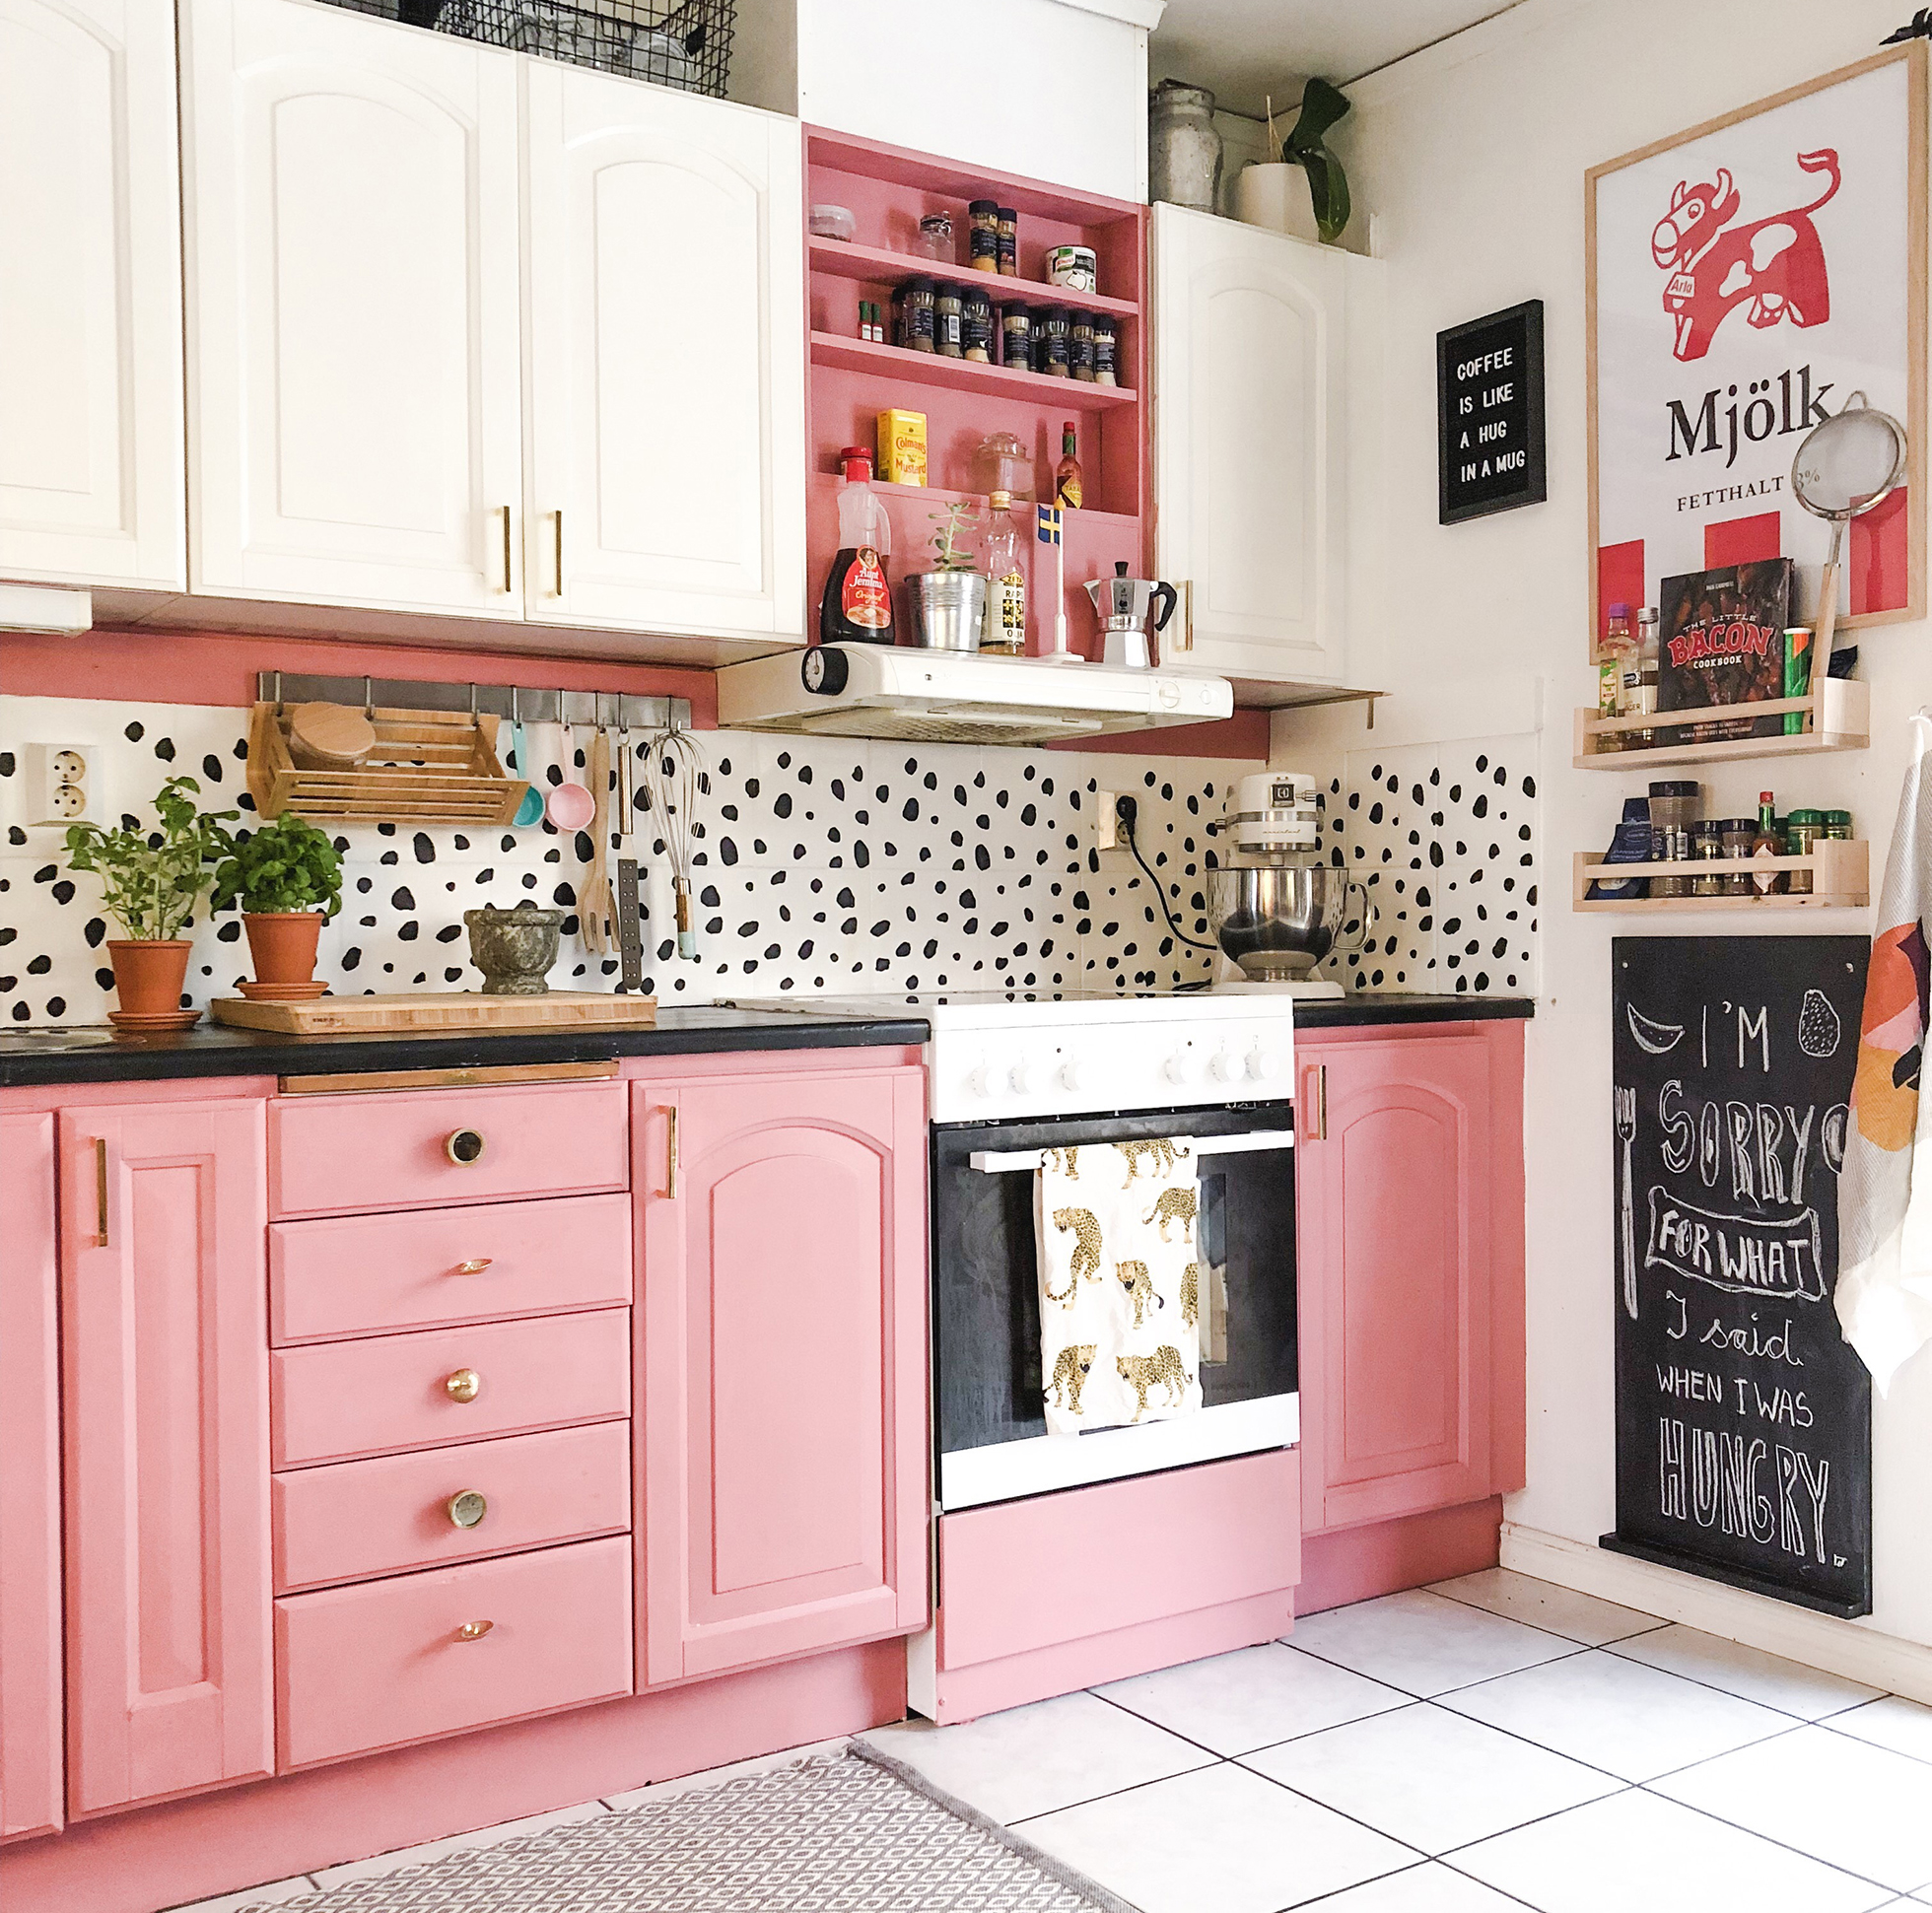 Pink, black, and white kitchen with pink and white cabinets